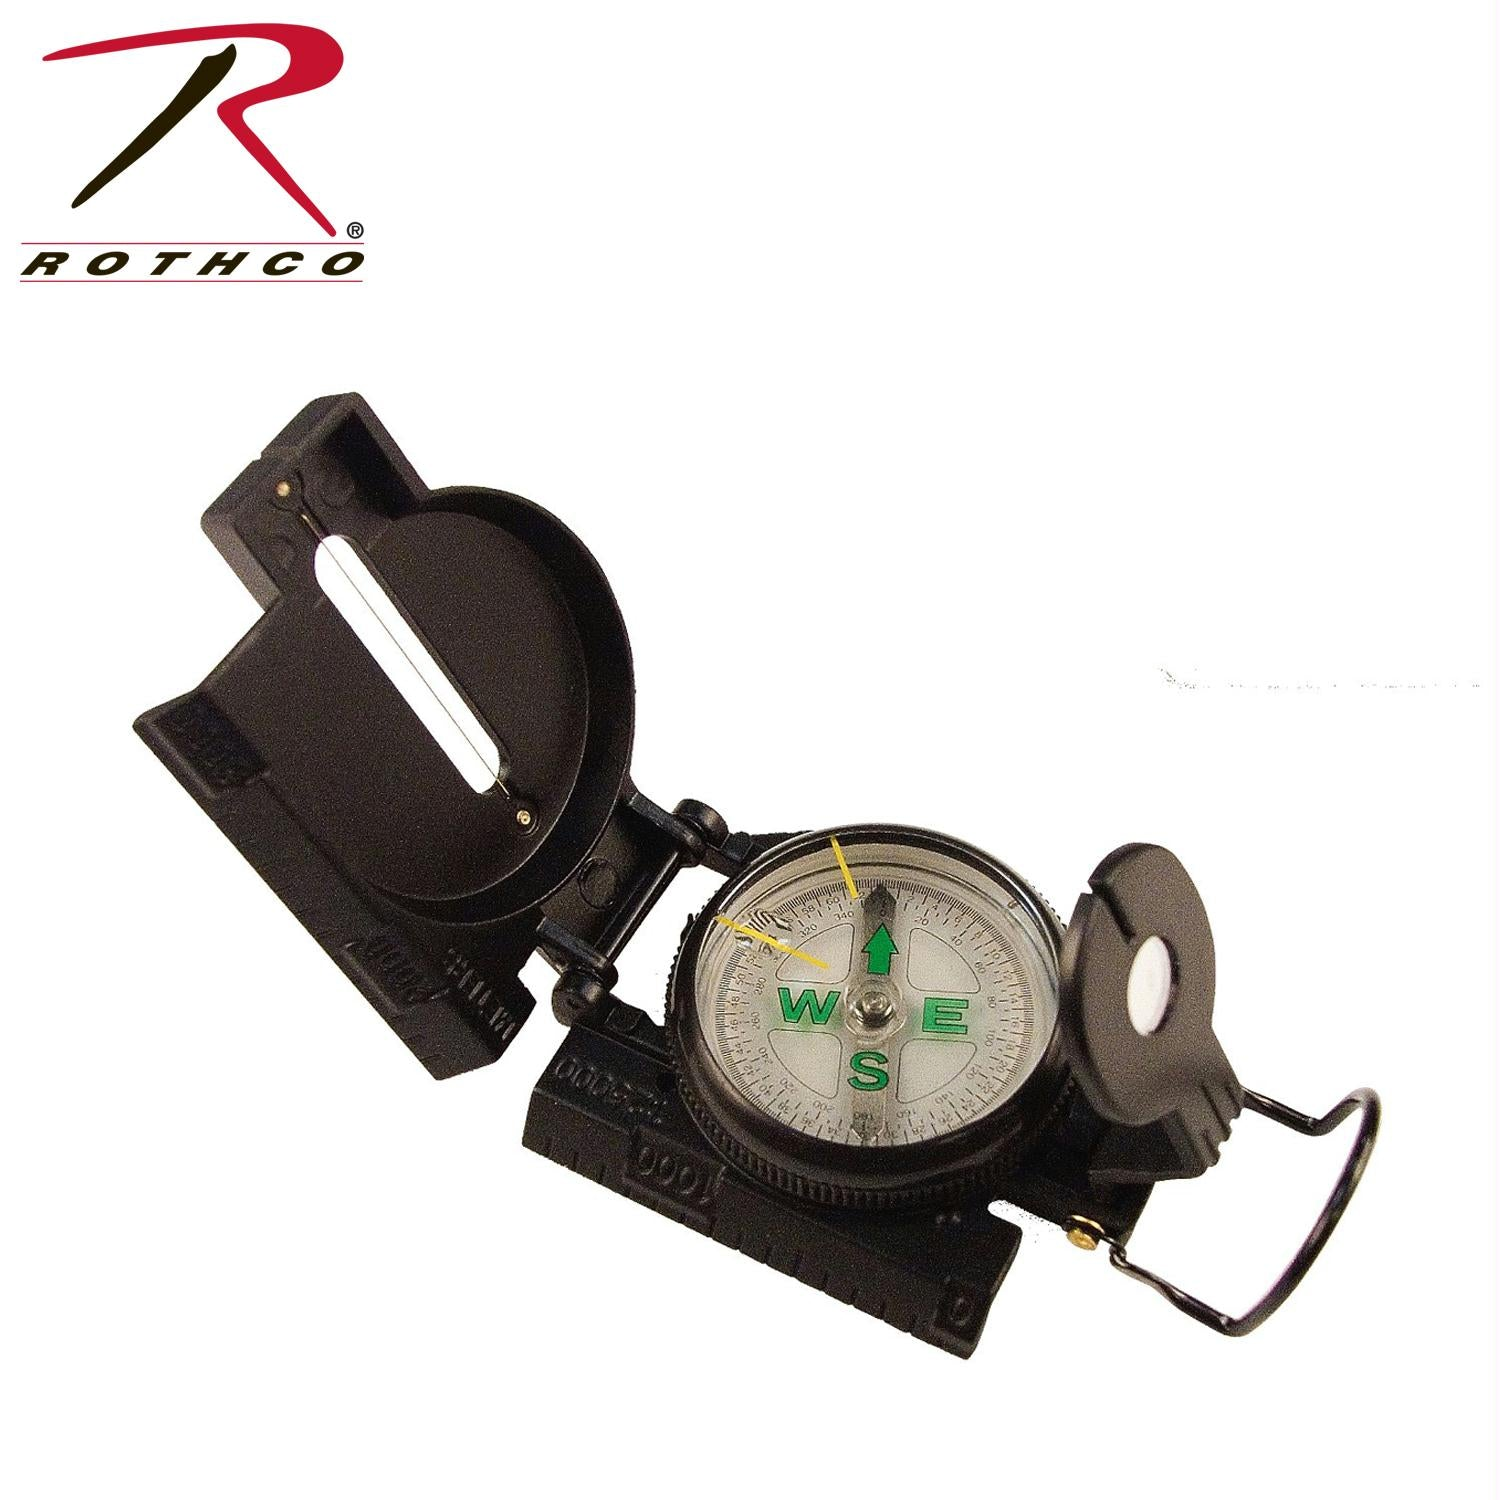 Rothco Military Marching Compass - Black